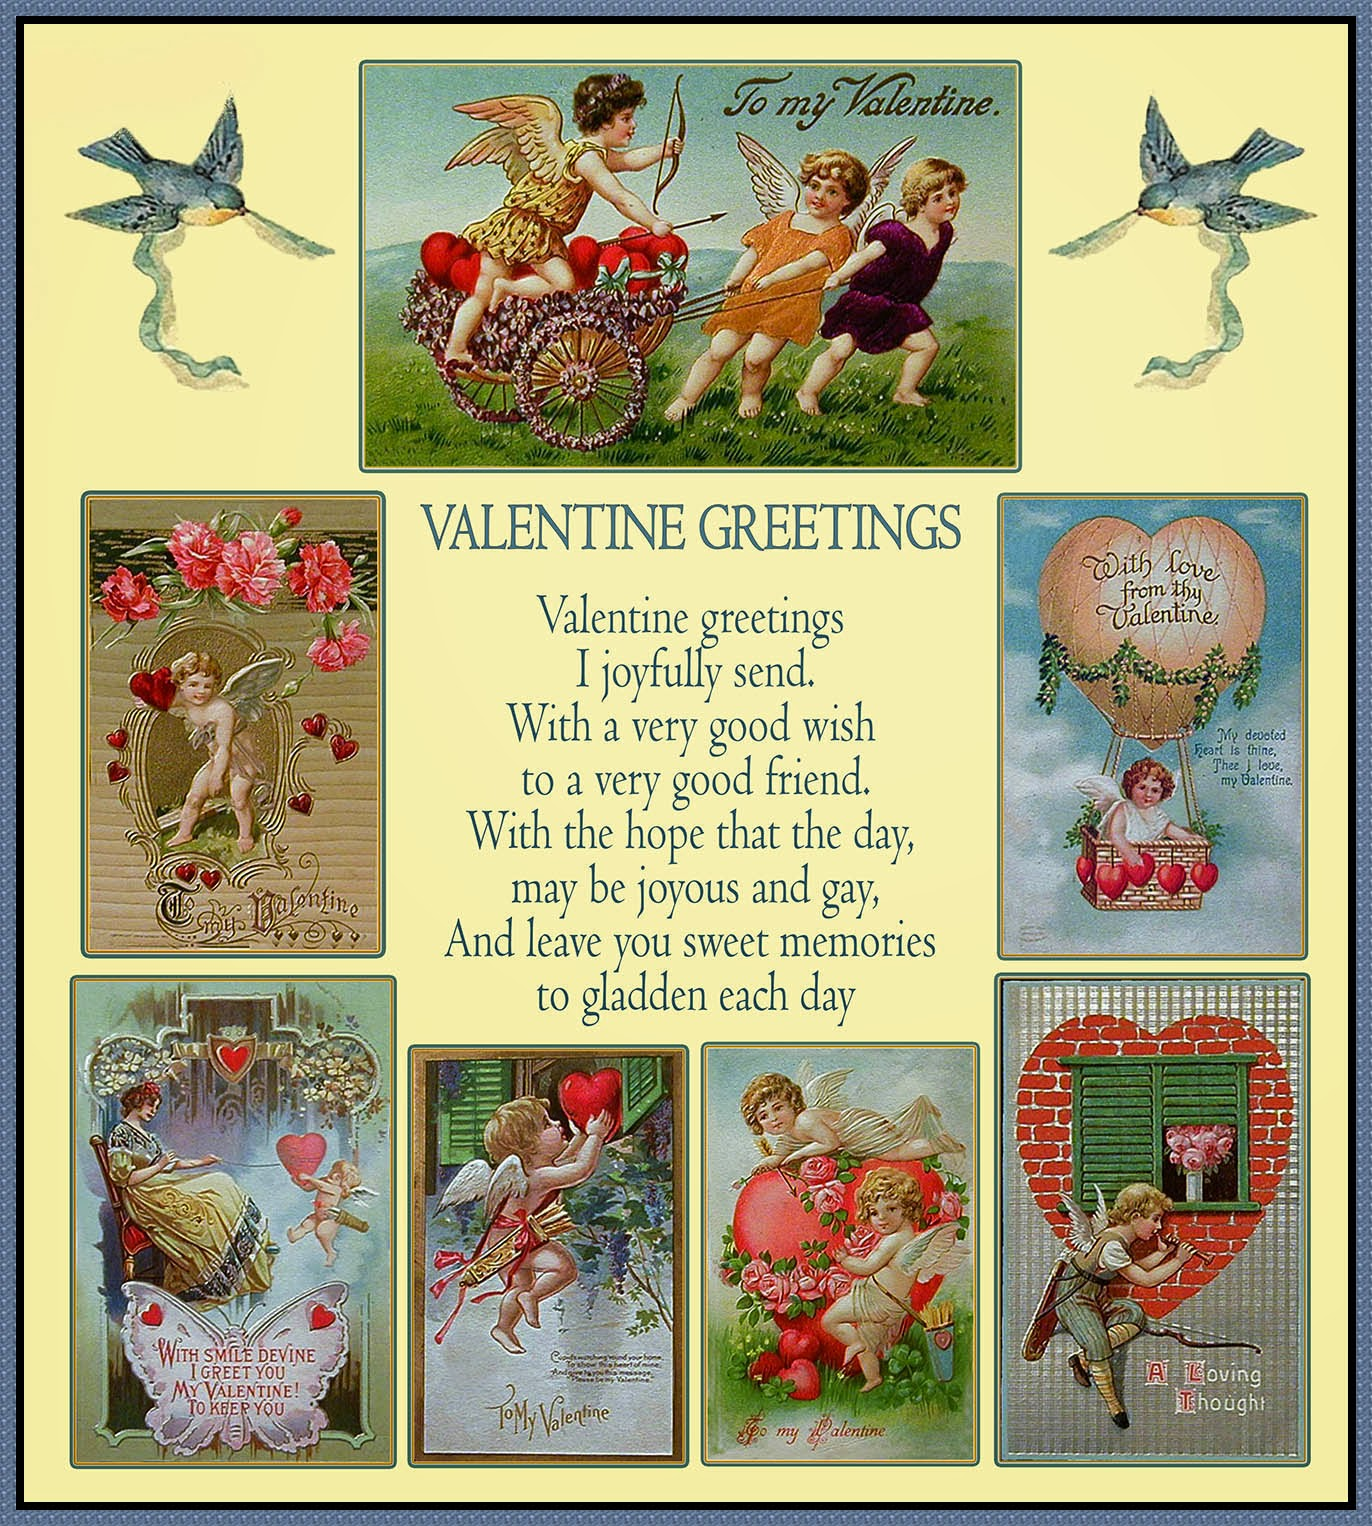 http://www.reuzeitmn.com/post-cards/holiday/valentine